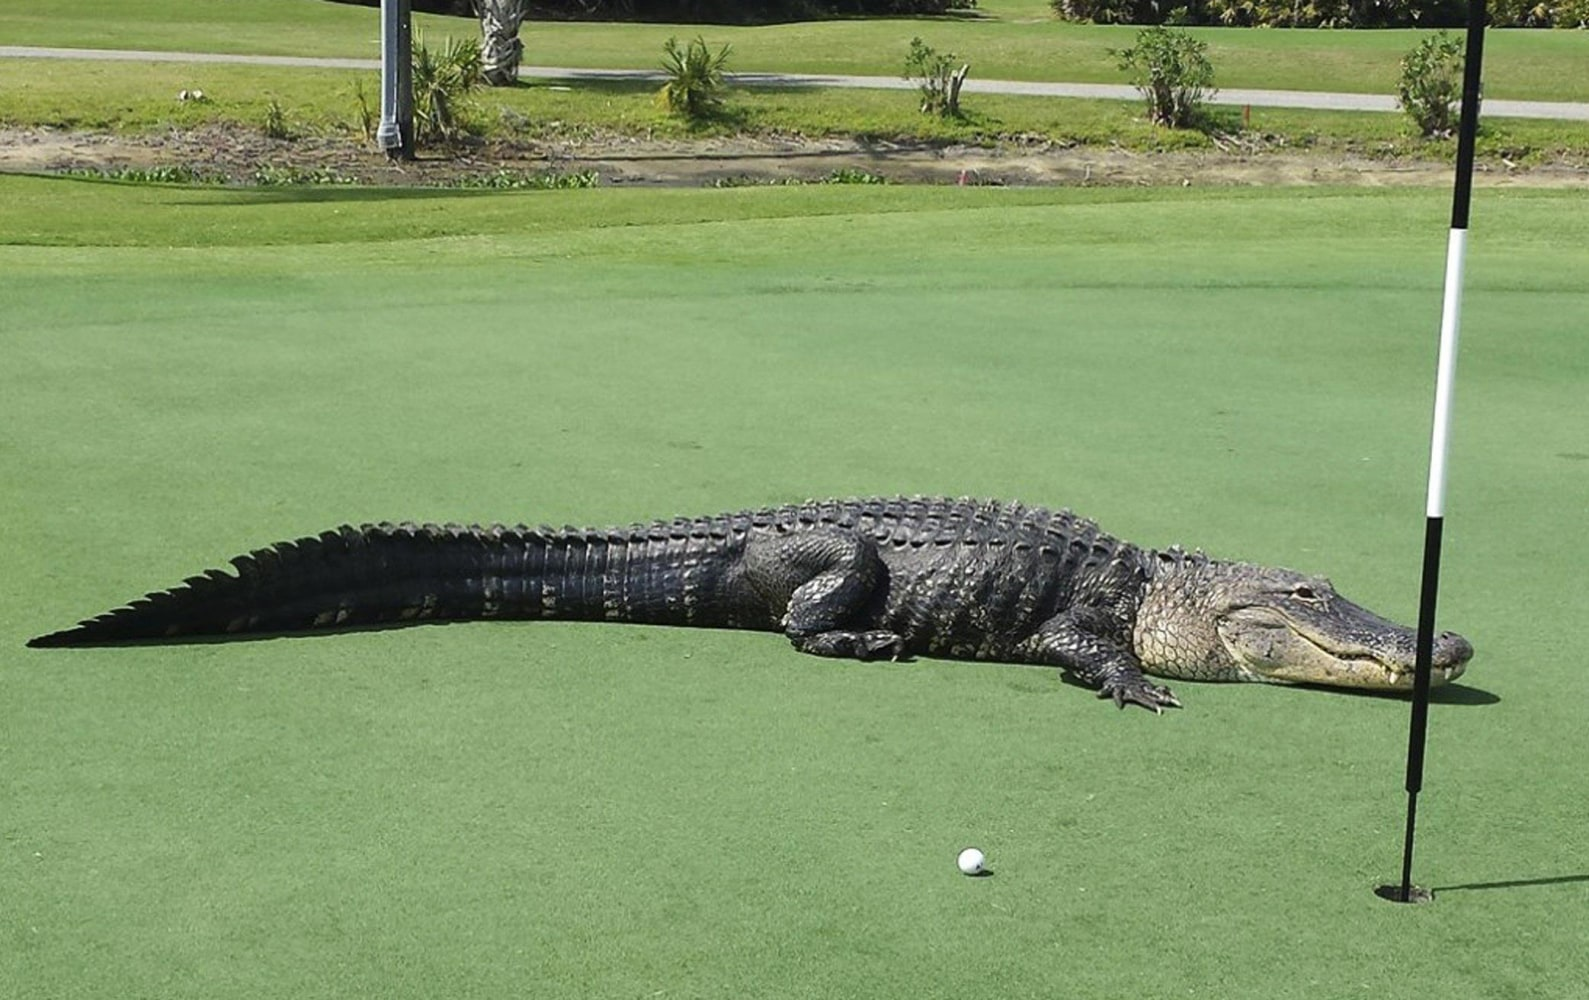 Image An American Alligator Estimated To Be 12 13 Feet Long Lies On The